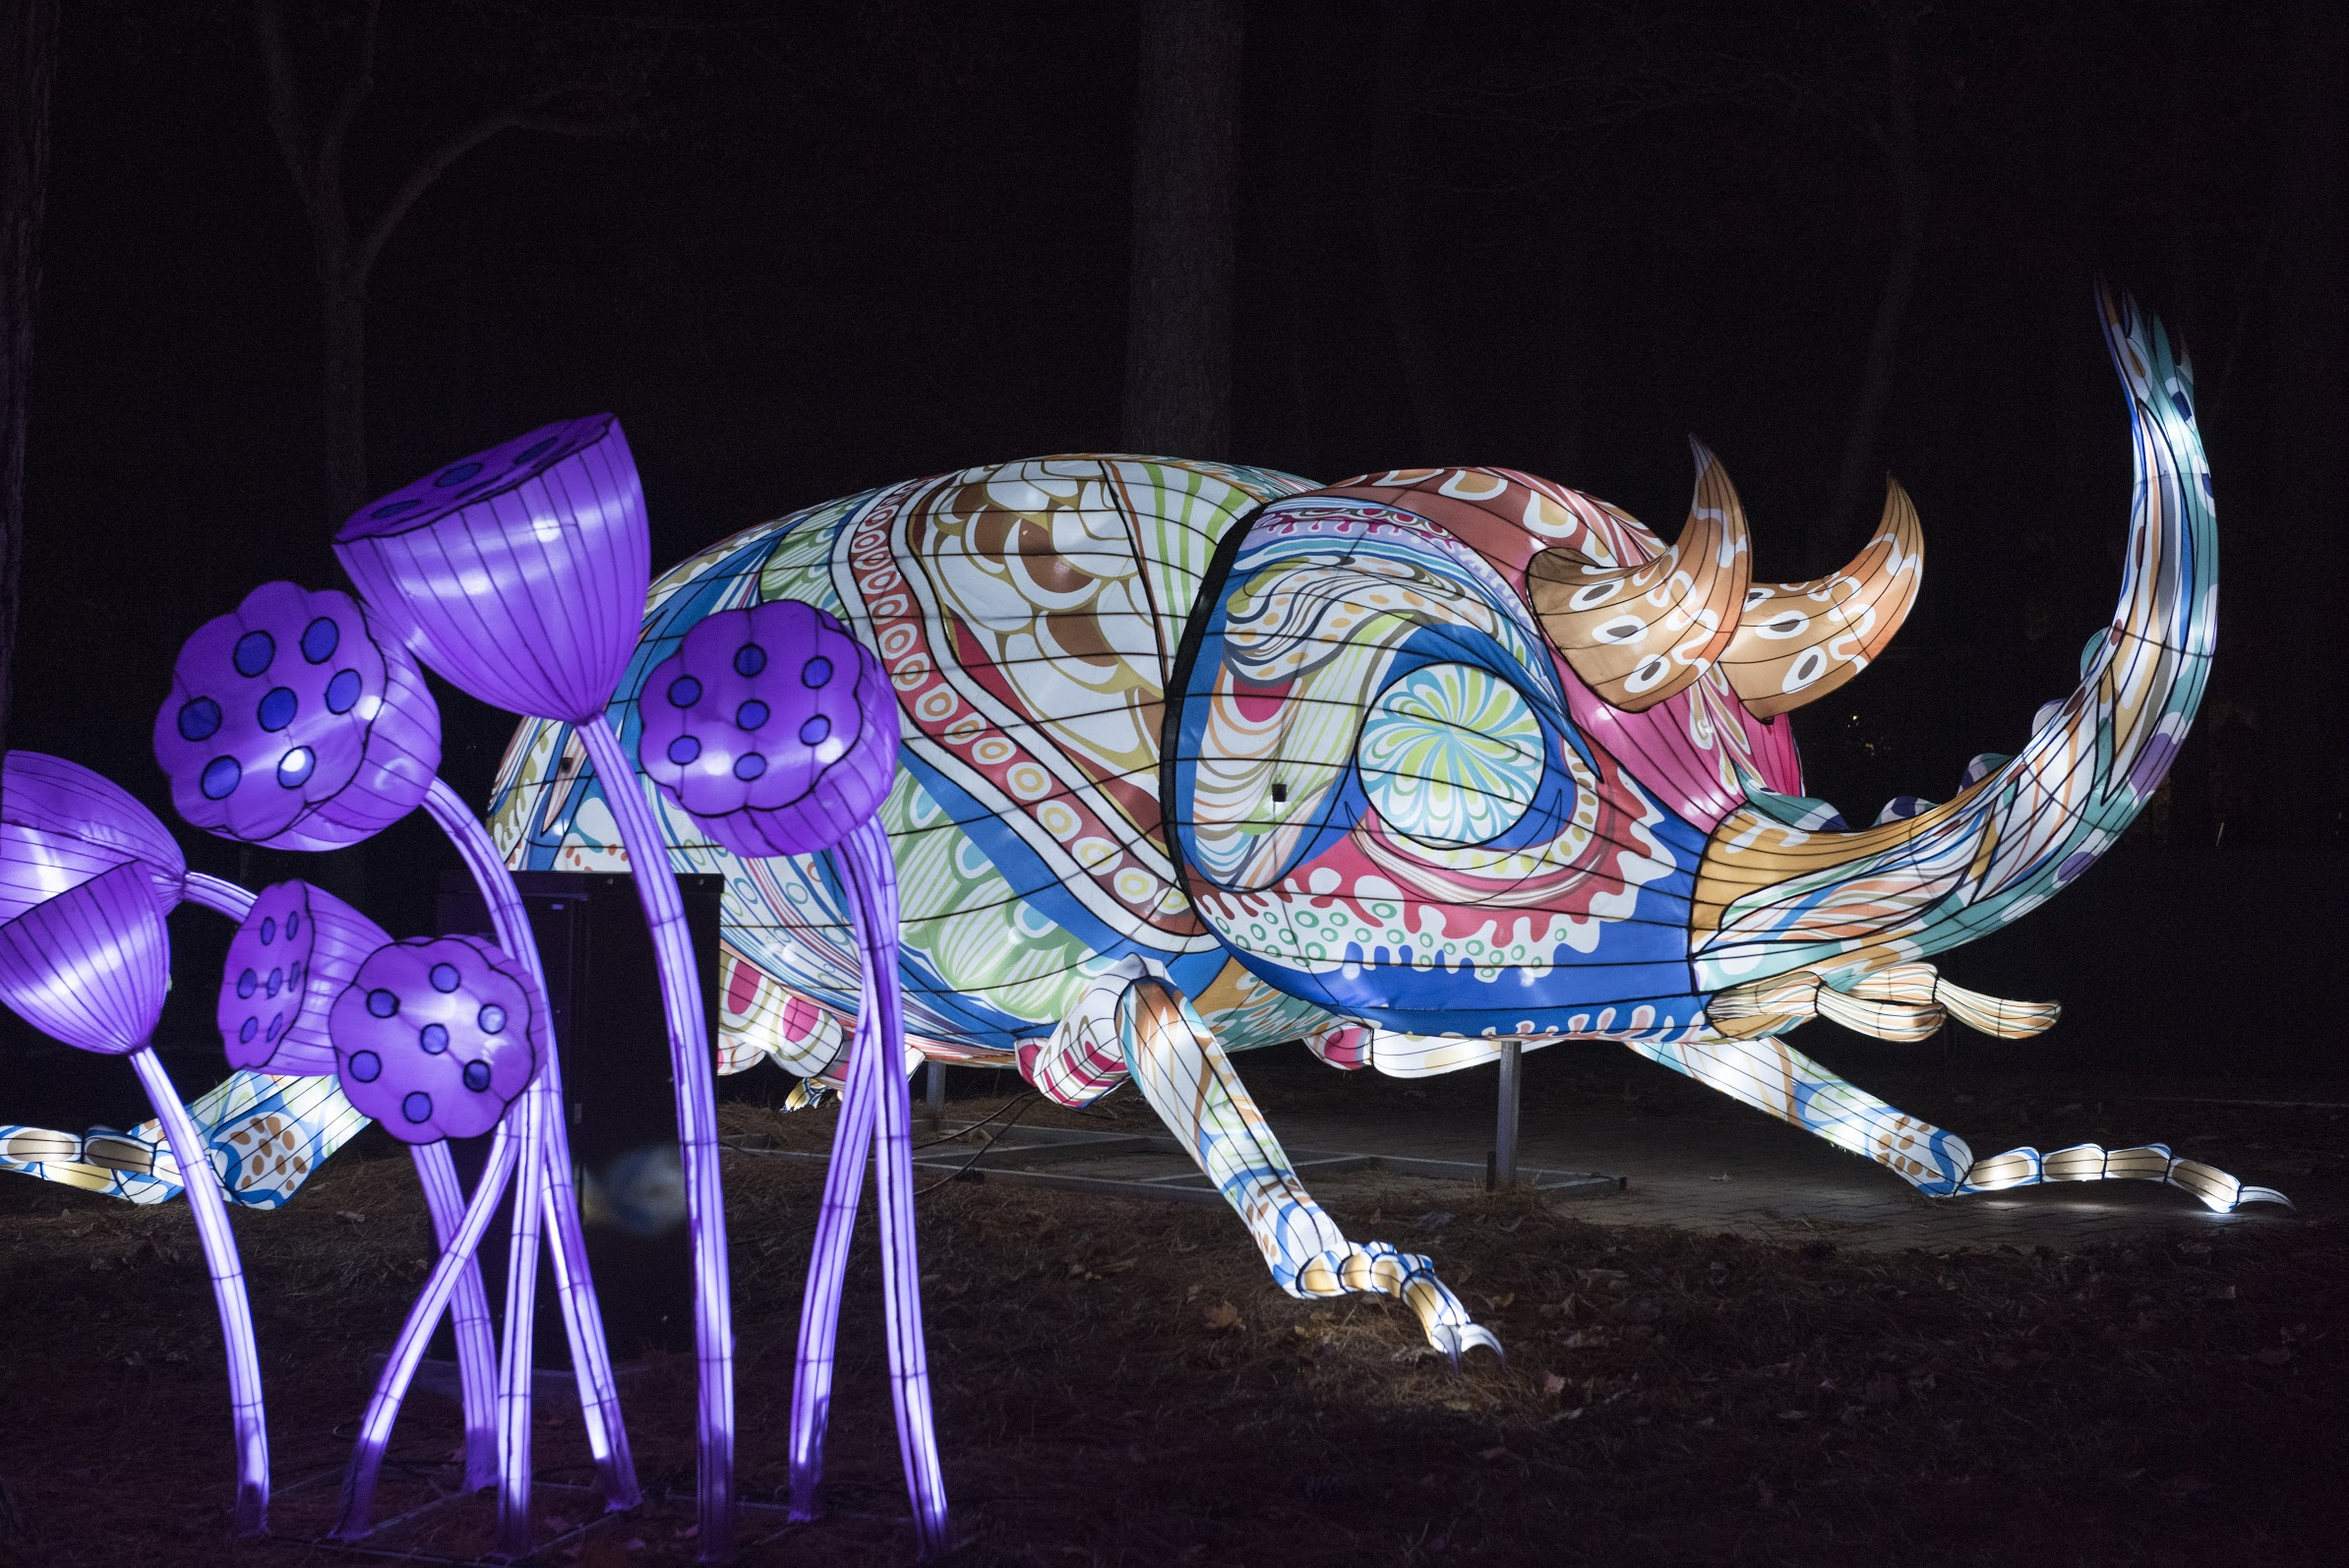 A larger than life patterned beetle at the North Carolina Chinese Lantern Festival